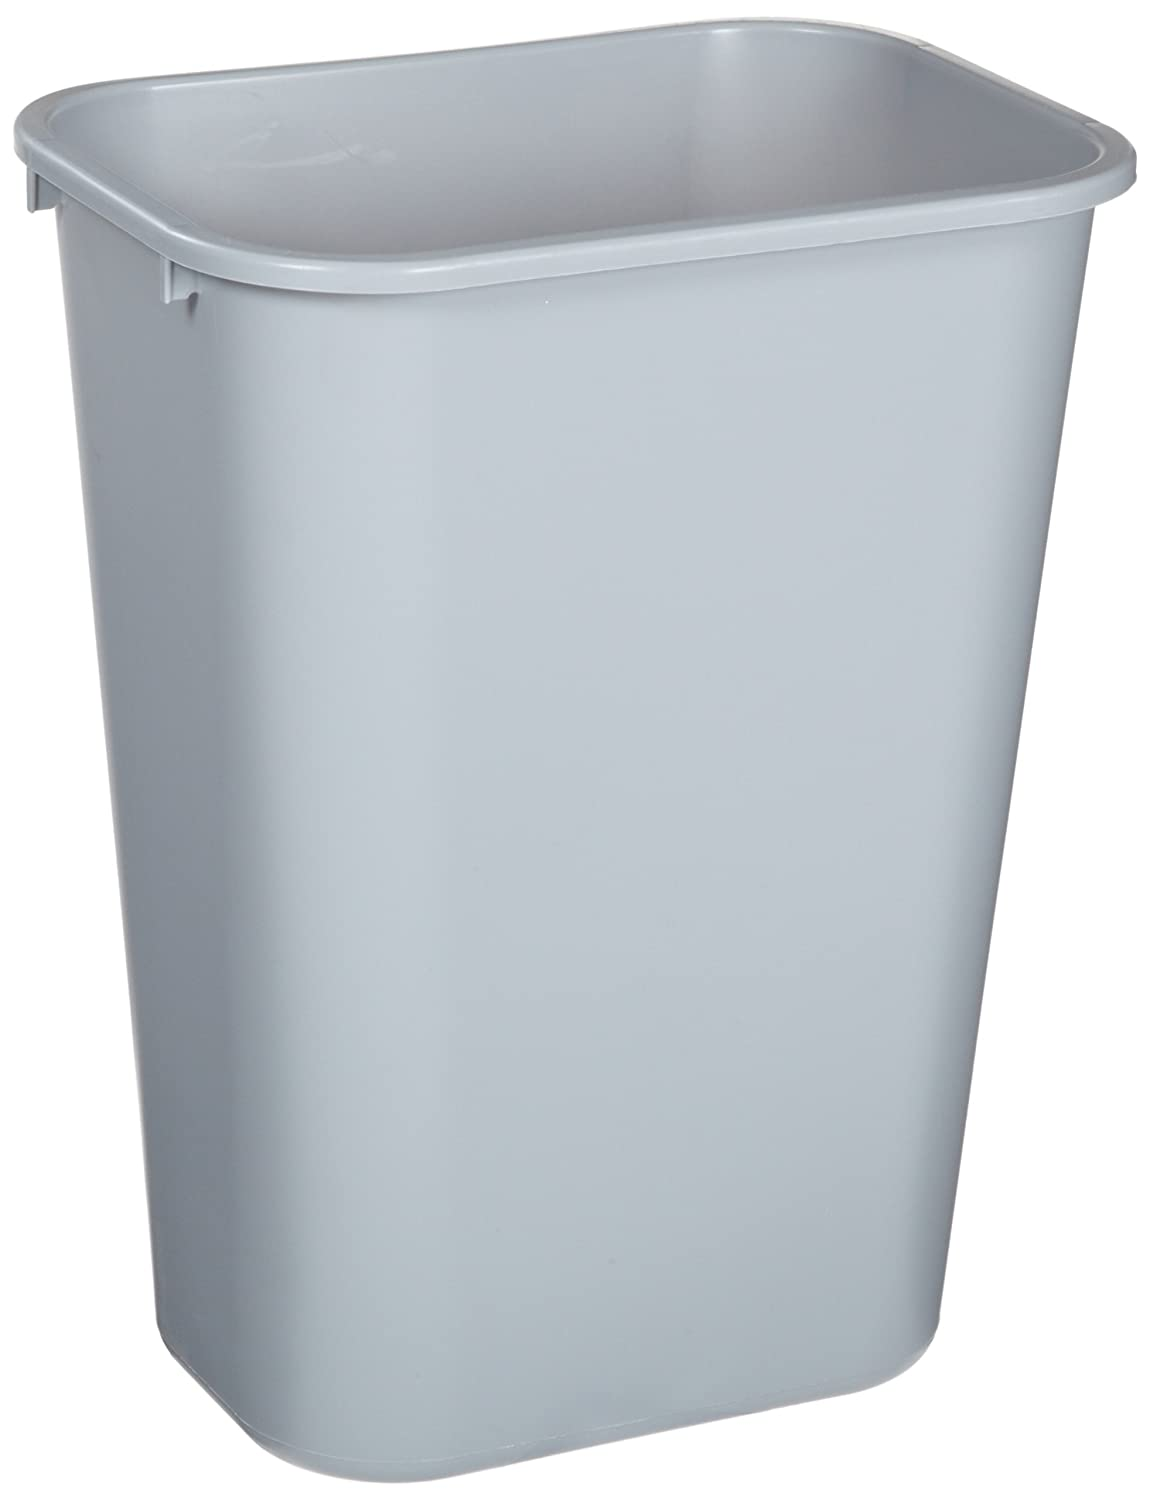 Trash Cans For Kitchen Rubbermaid Bathroom Wastebasket Plastic Trash Can Bin